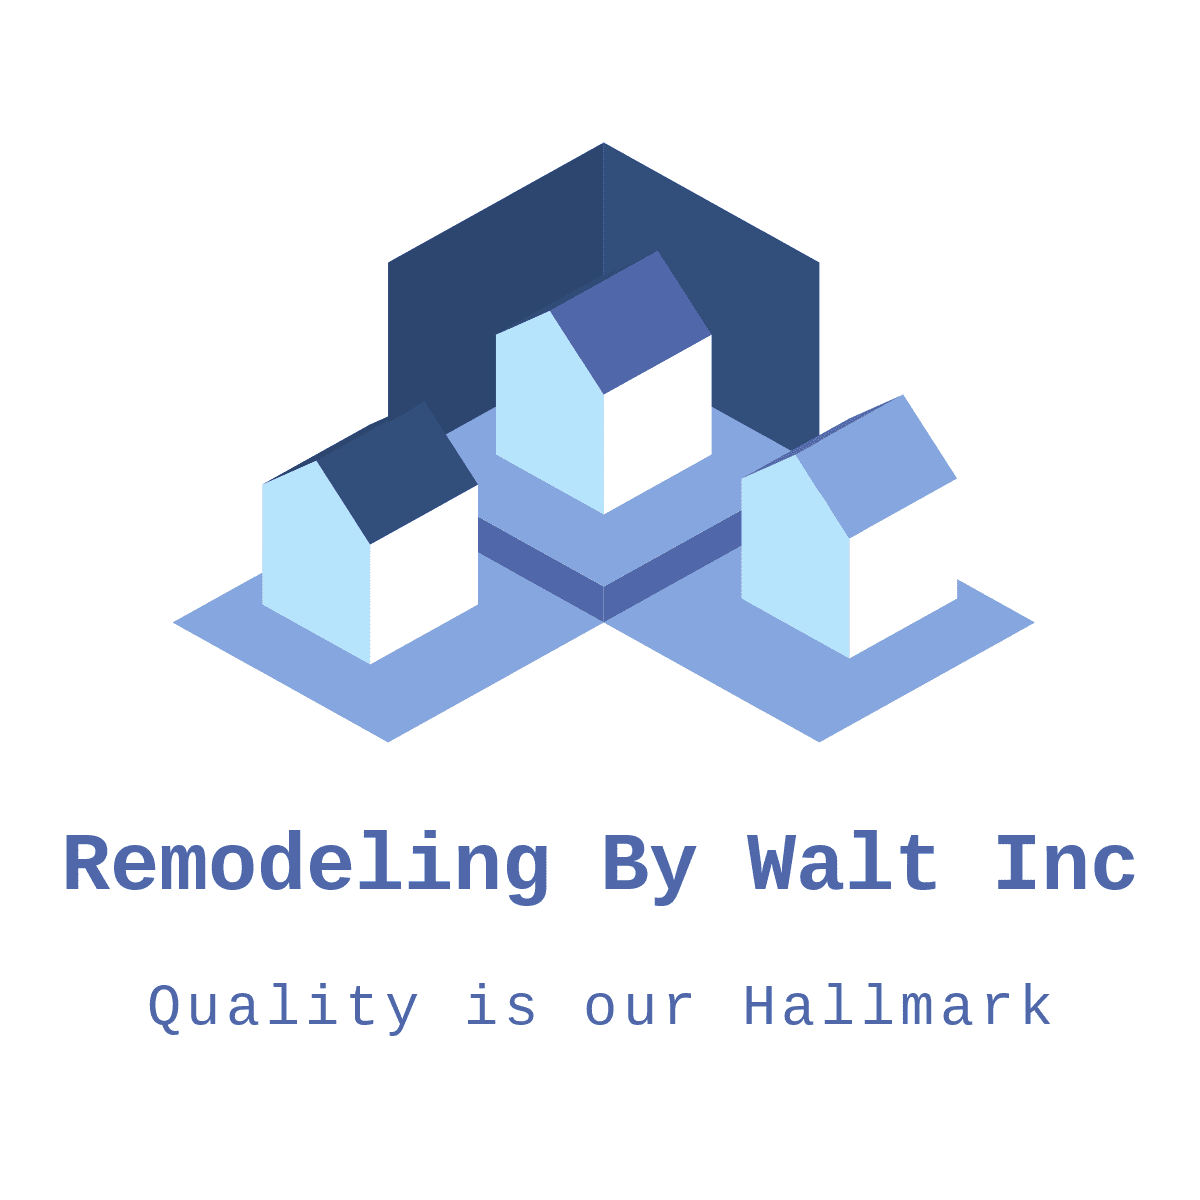 Remodeling By Walt Inc primary image